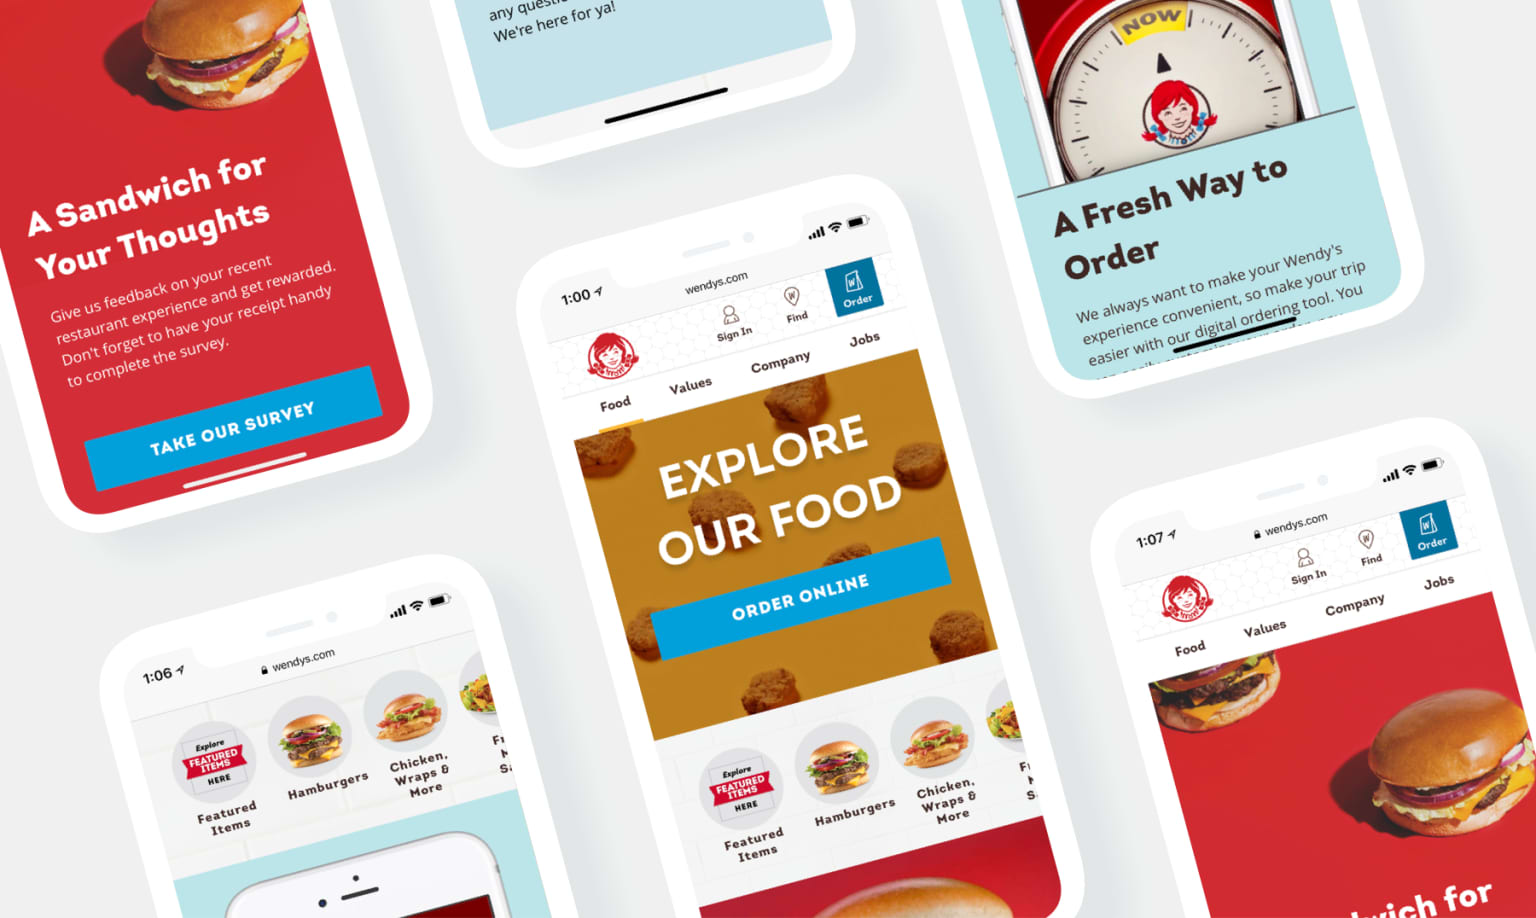 Future-proofing The Wendy's Experience